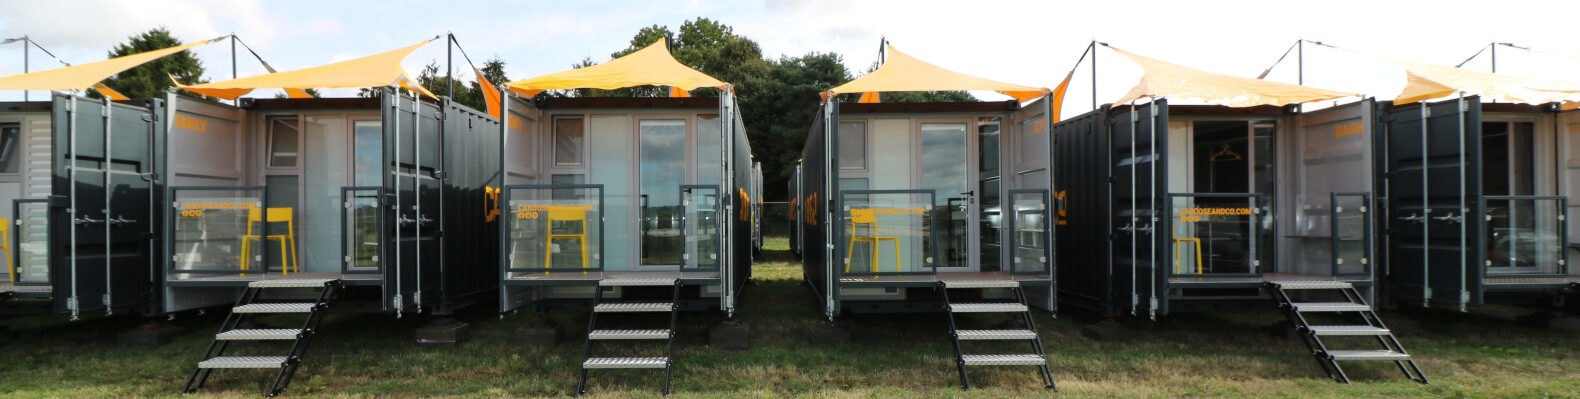 shipping container lodging with pitched yellow roof